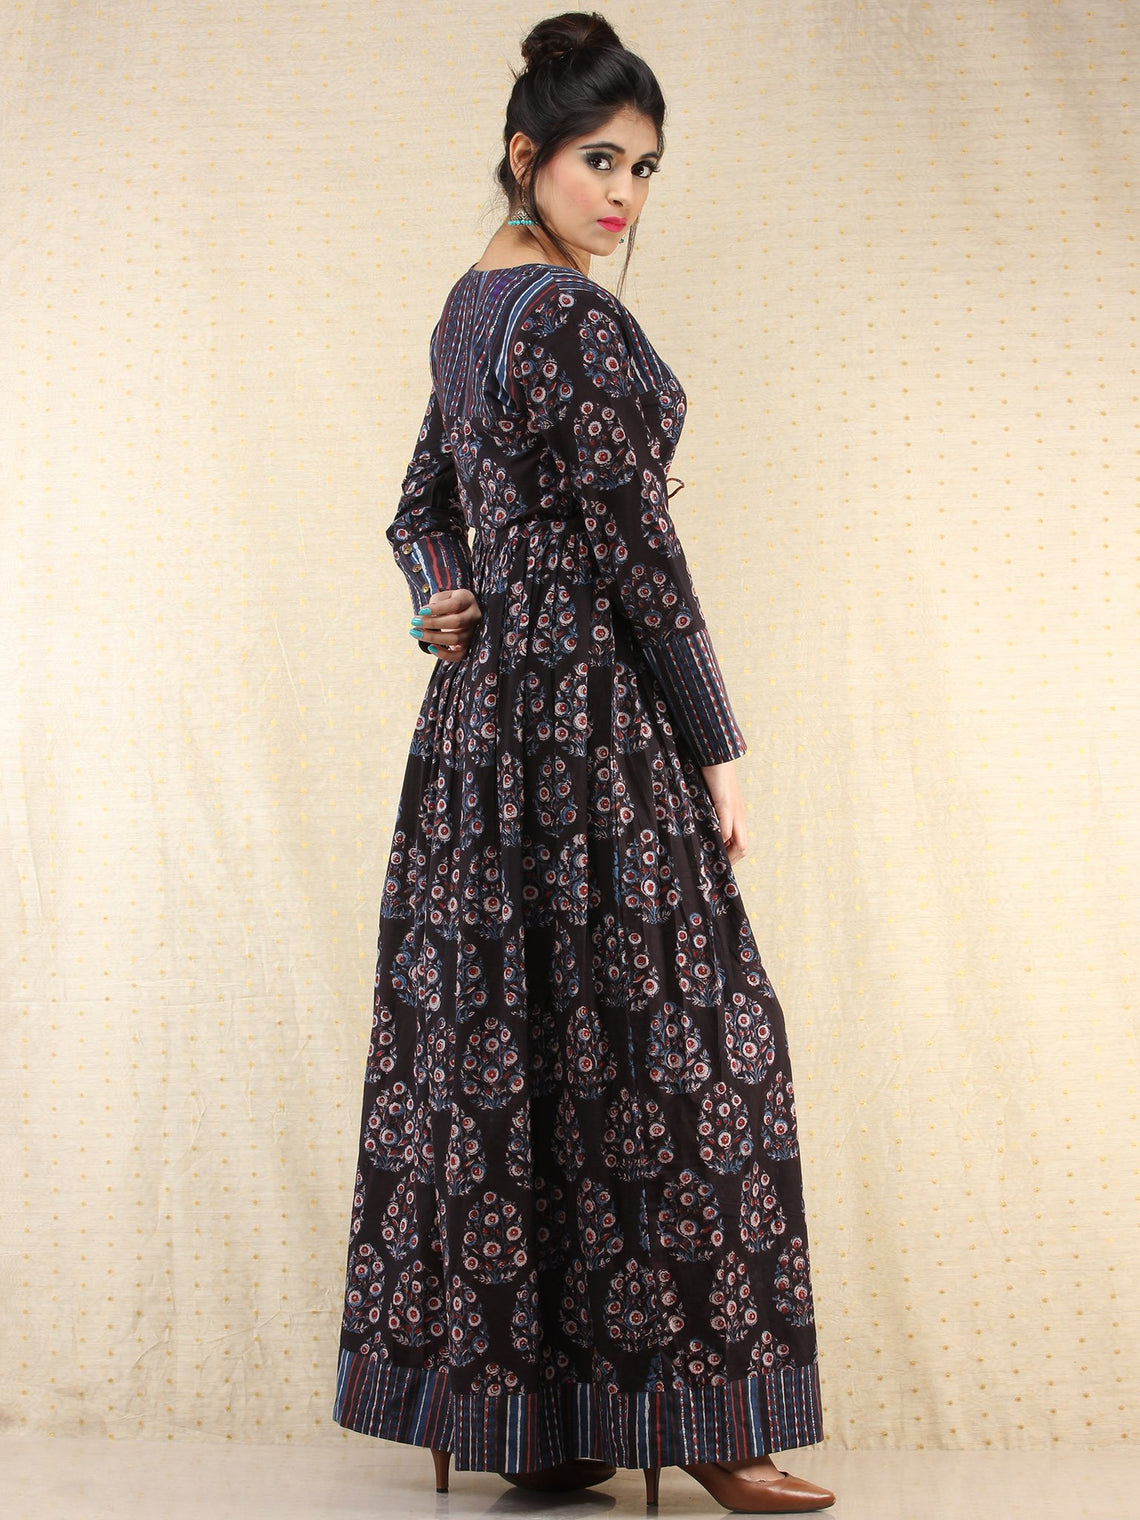 Tamanna - Hand Block Printed Long Cotton Dress - D389F1837